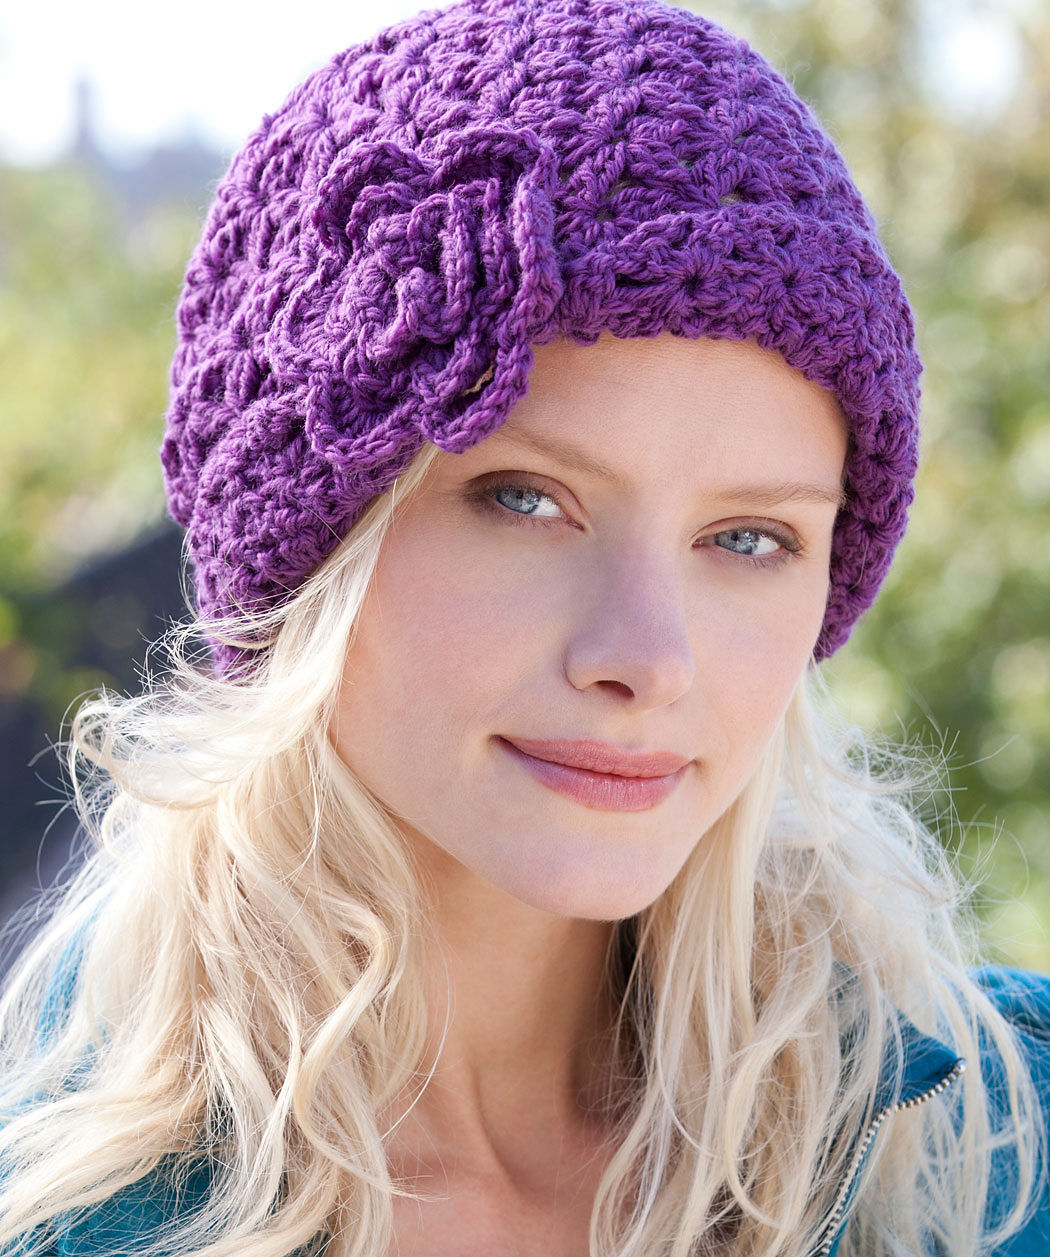 Crochet Hat With Flower On Side Pattern